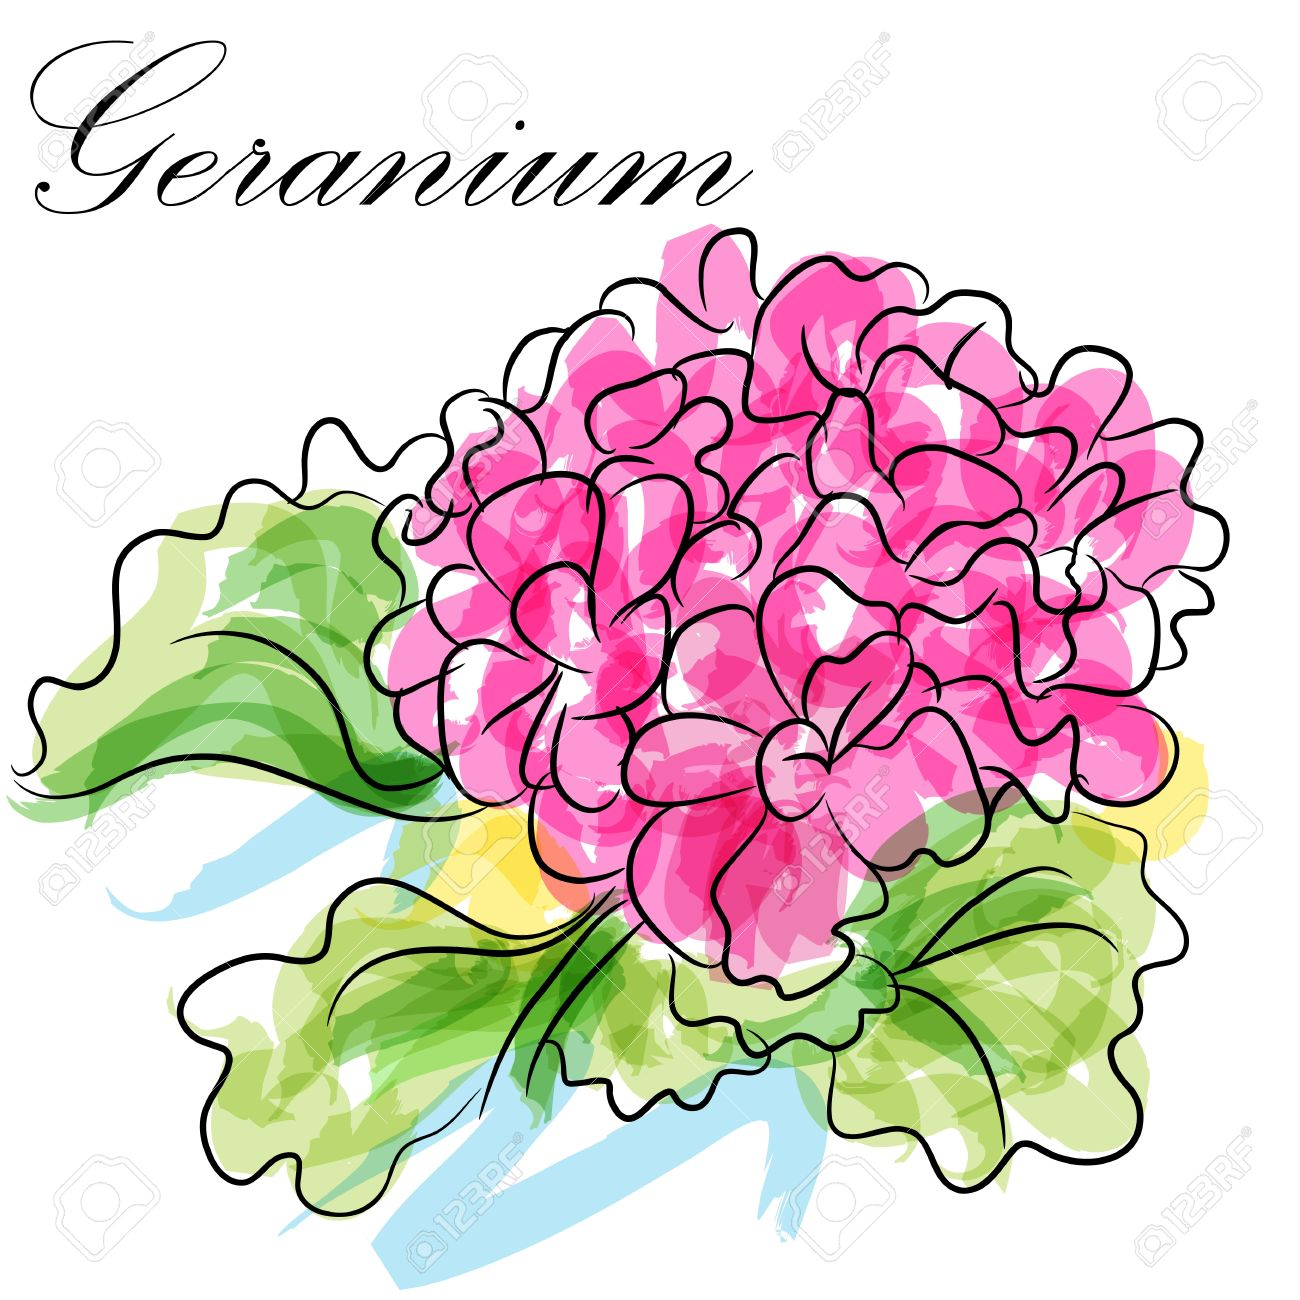 An Image Of A Pink Geranium Flower. Royalty Free Cliparts, Vectors.